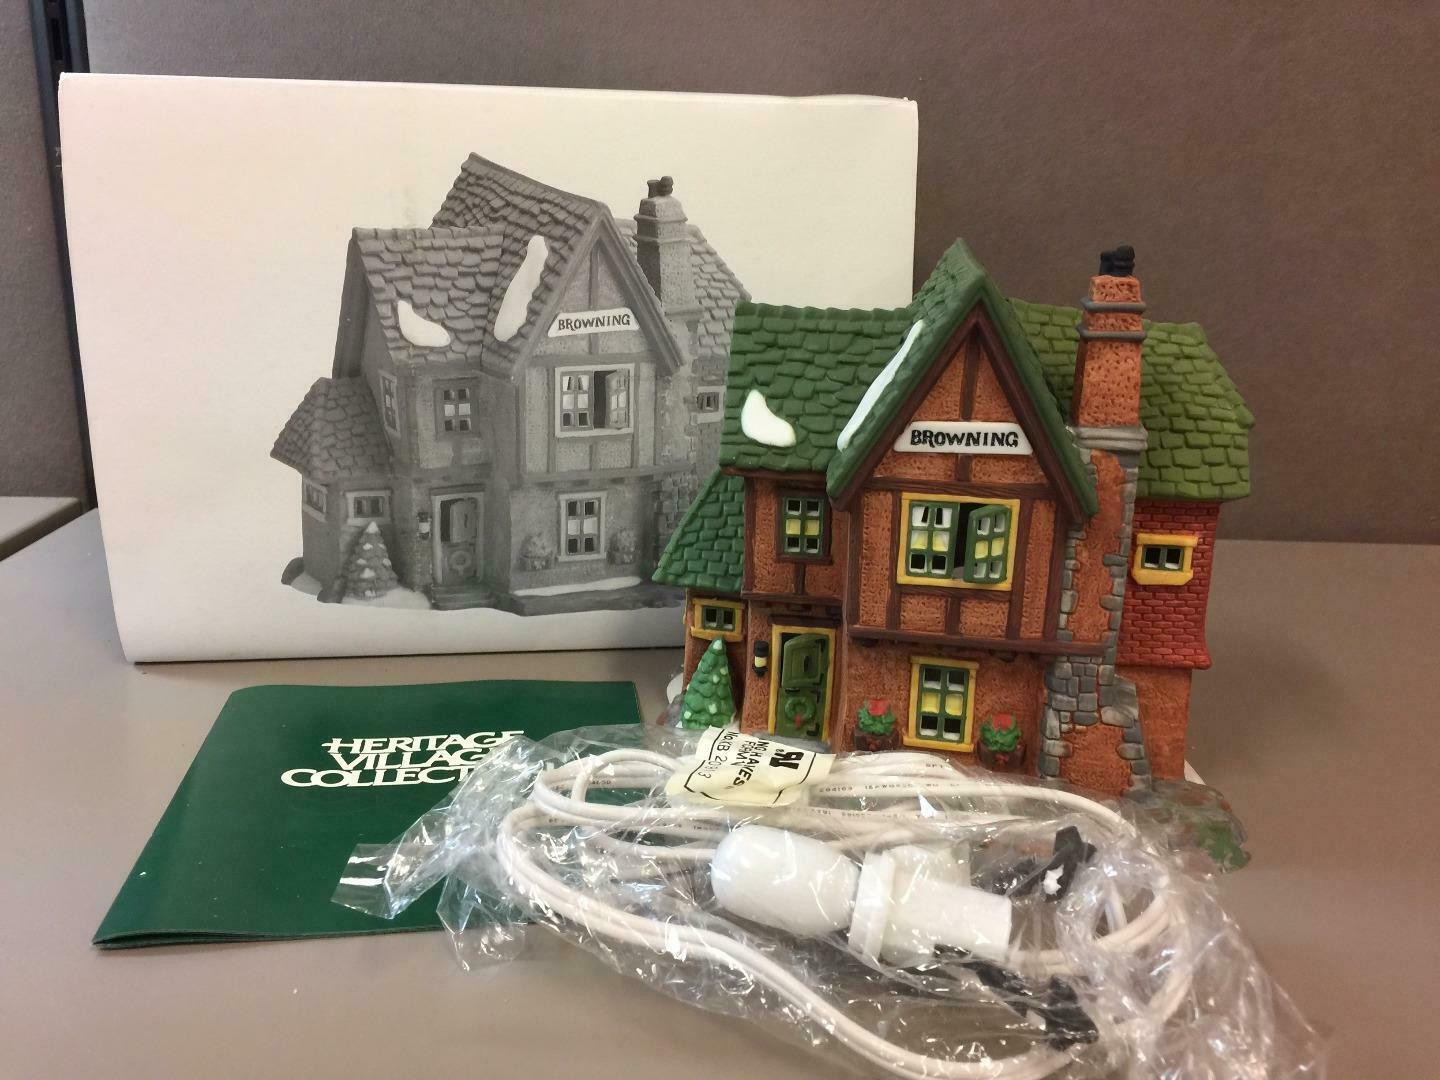 Primary image for Department 56 Heritage Village Dickens' Series BROWNING COTTAGE House #58246